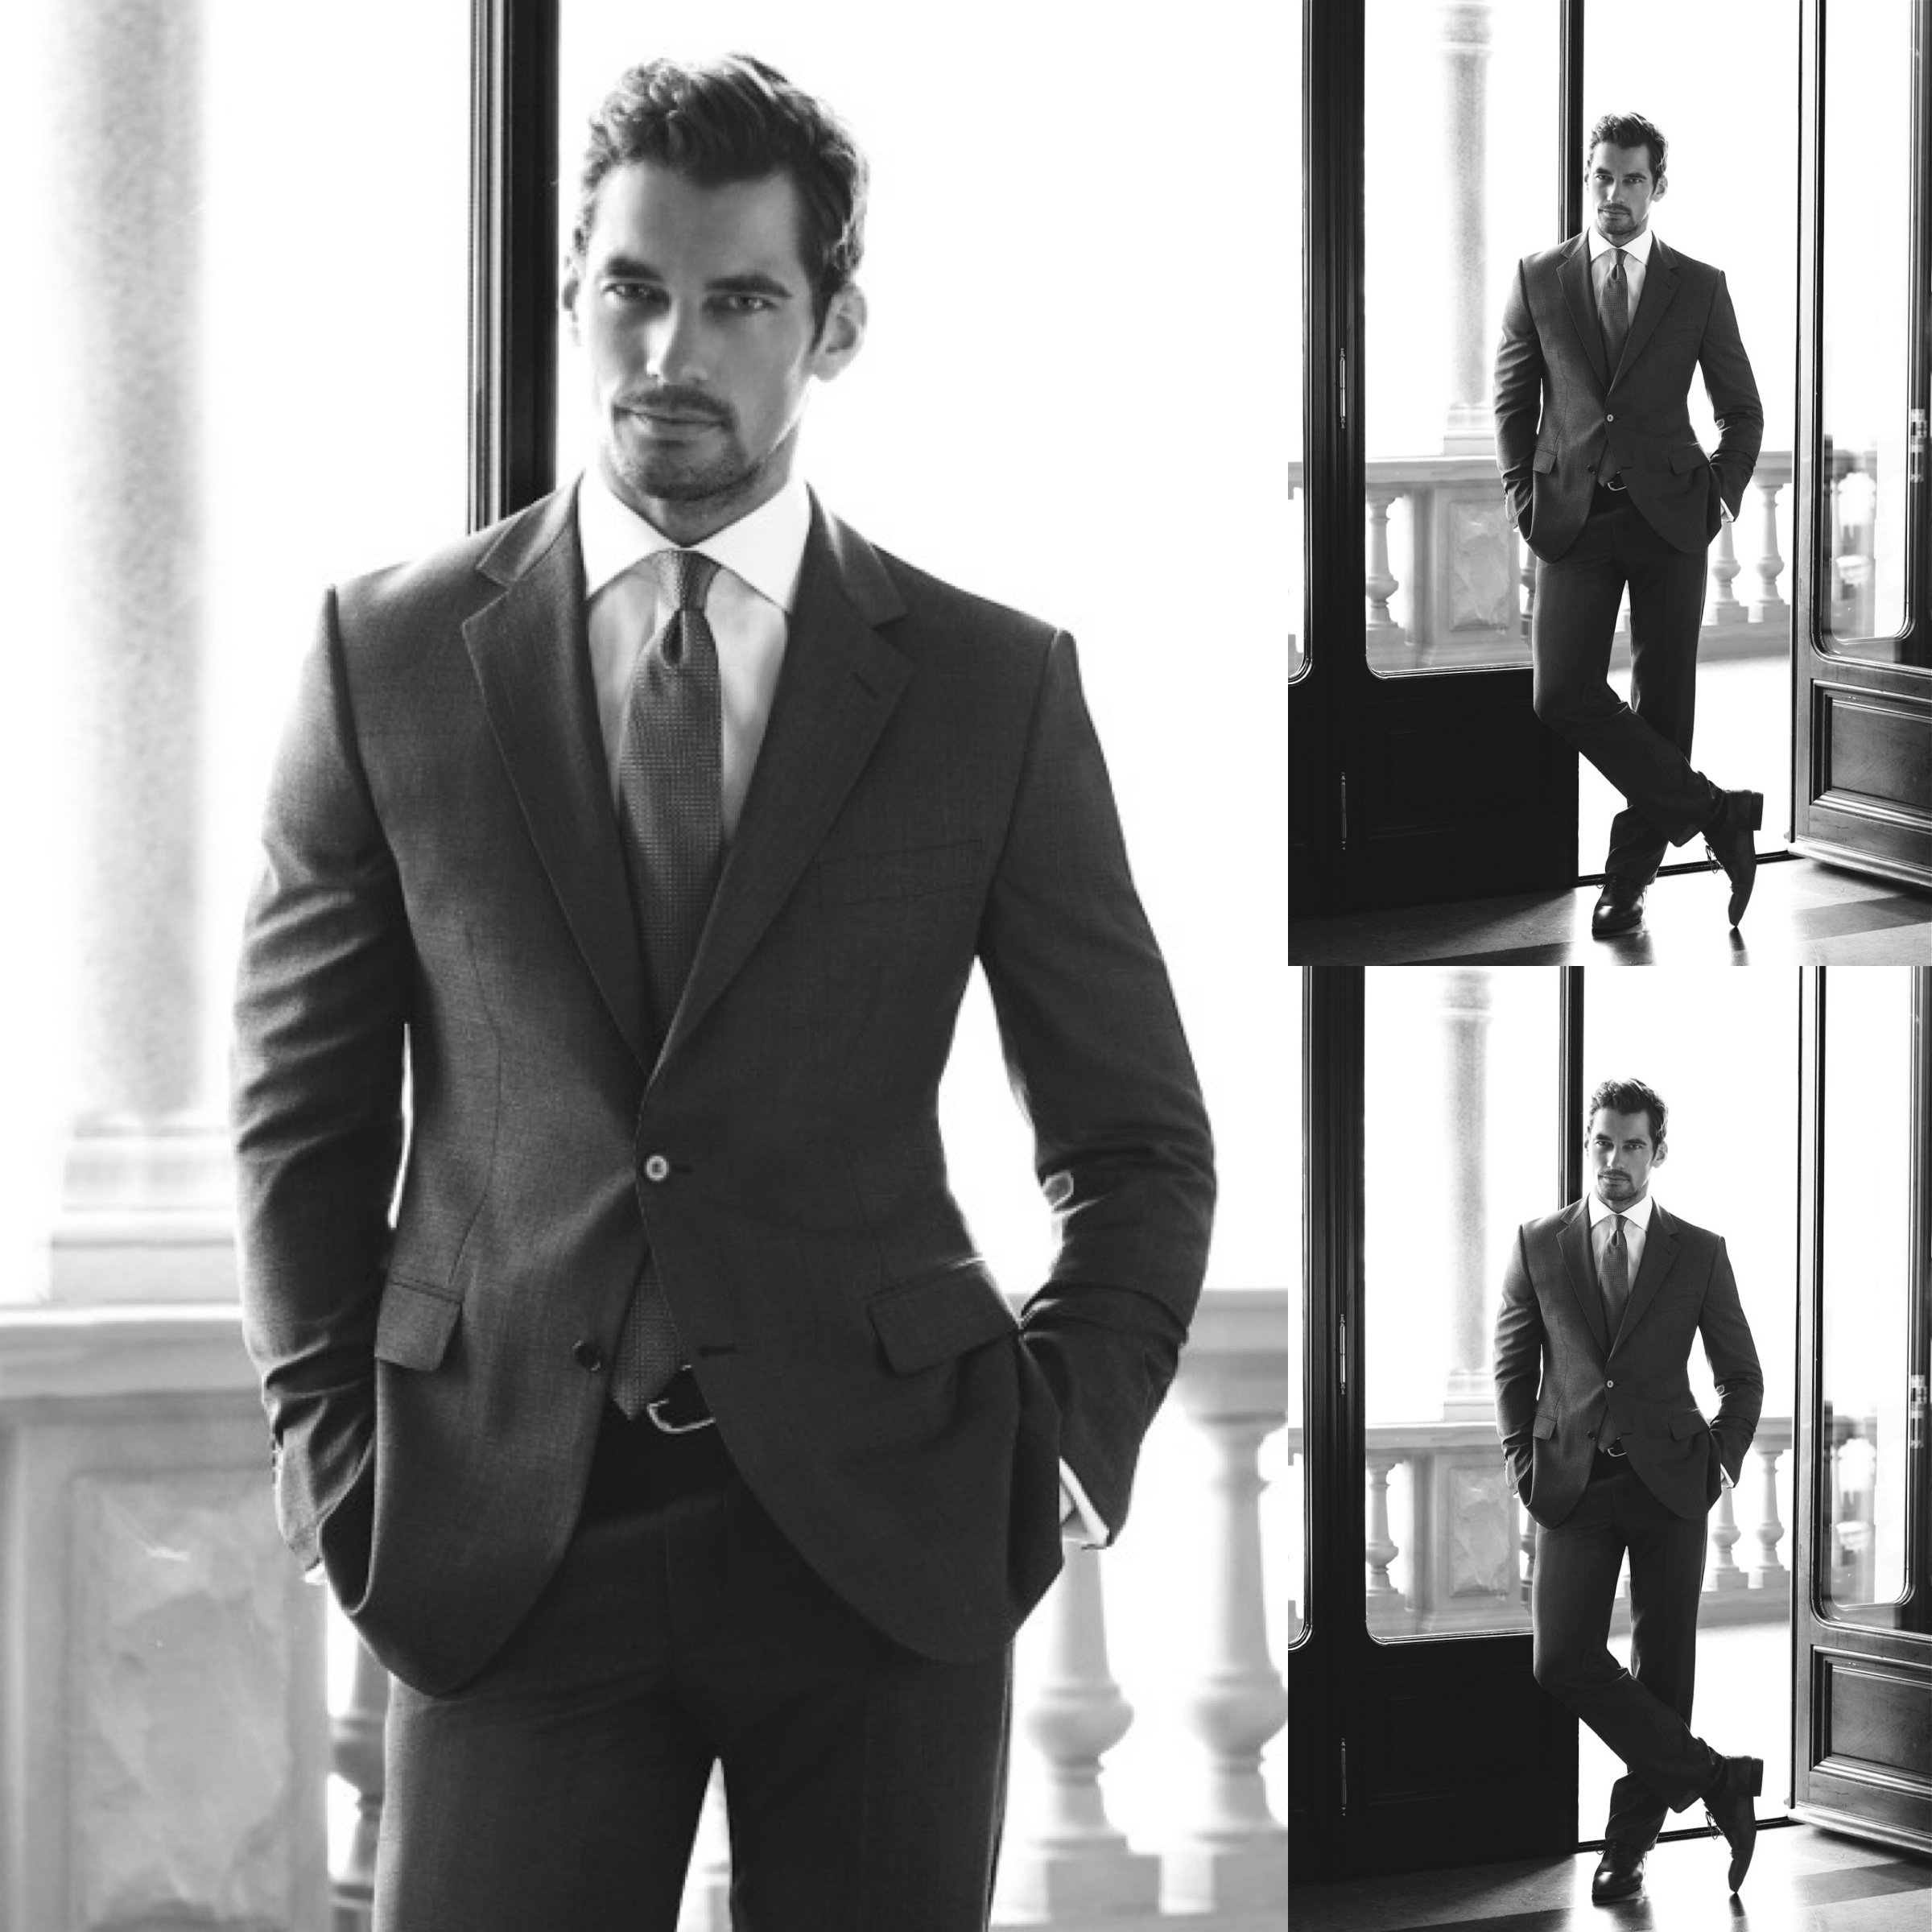 #2 (207 likes on The Man Has Style) :: David Gandy